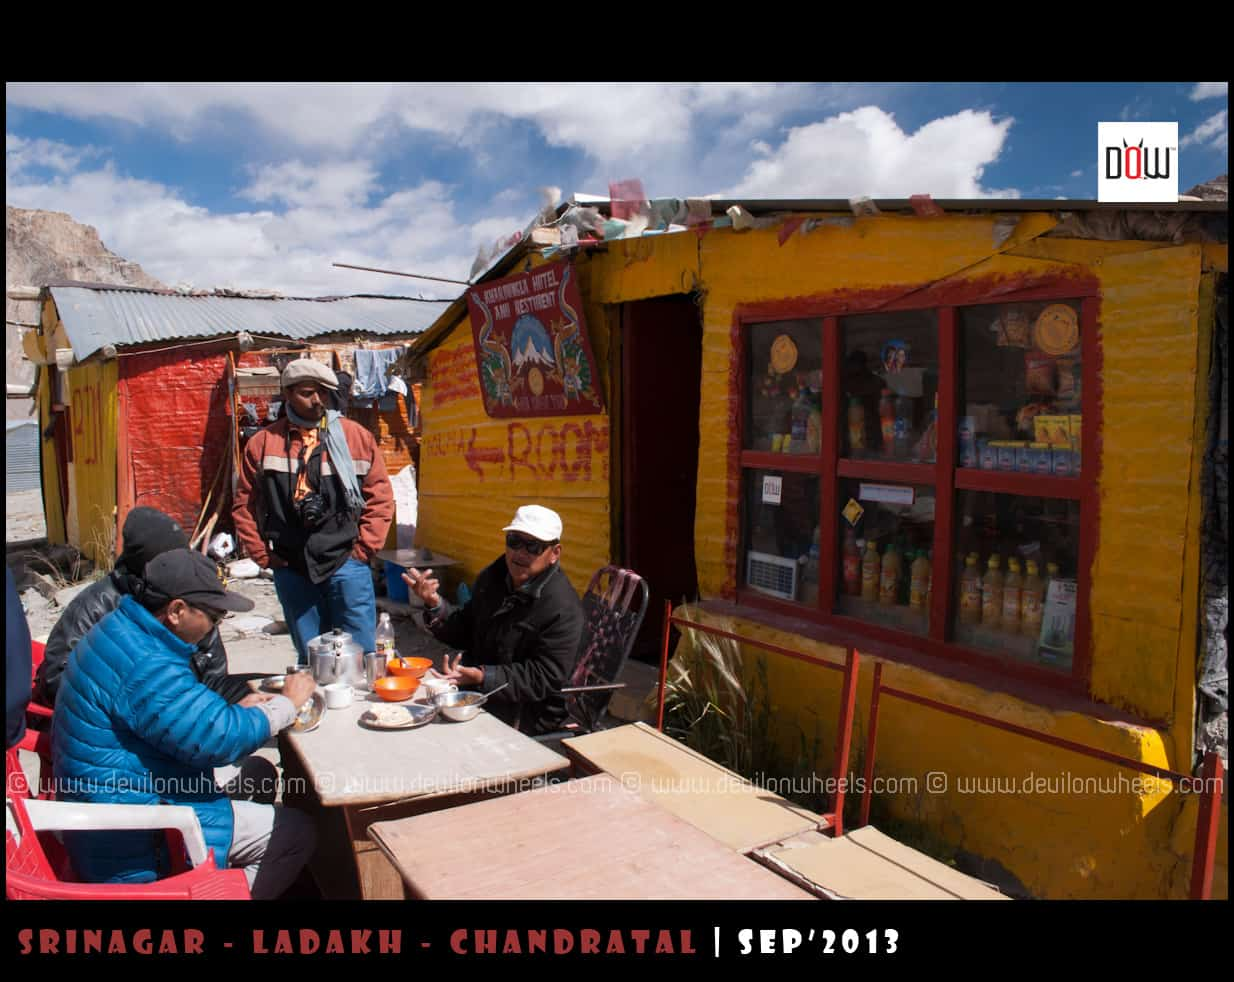 Eating at Local Dhabha on Manali - Leh Highway